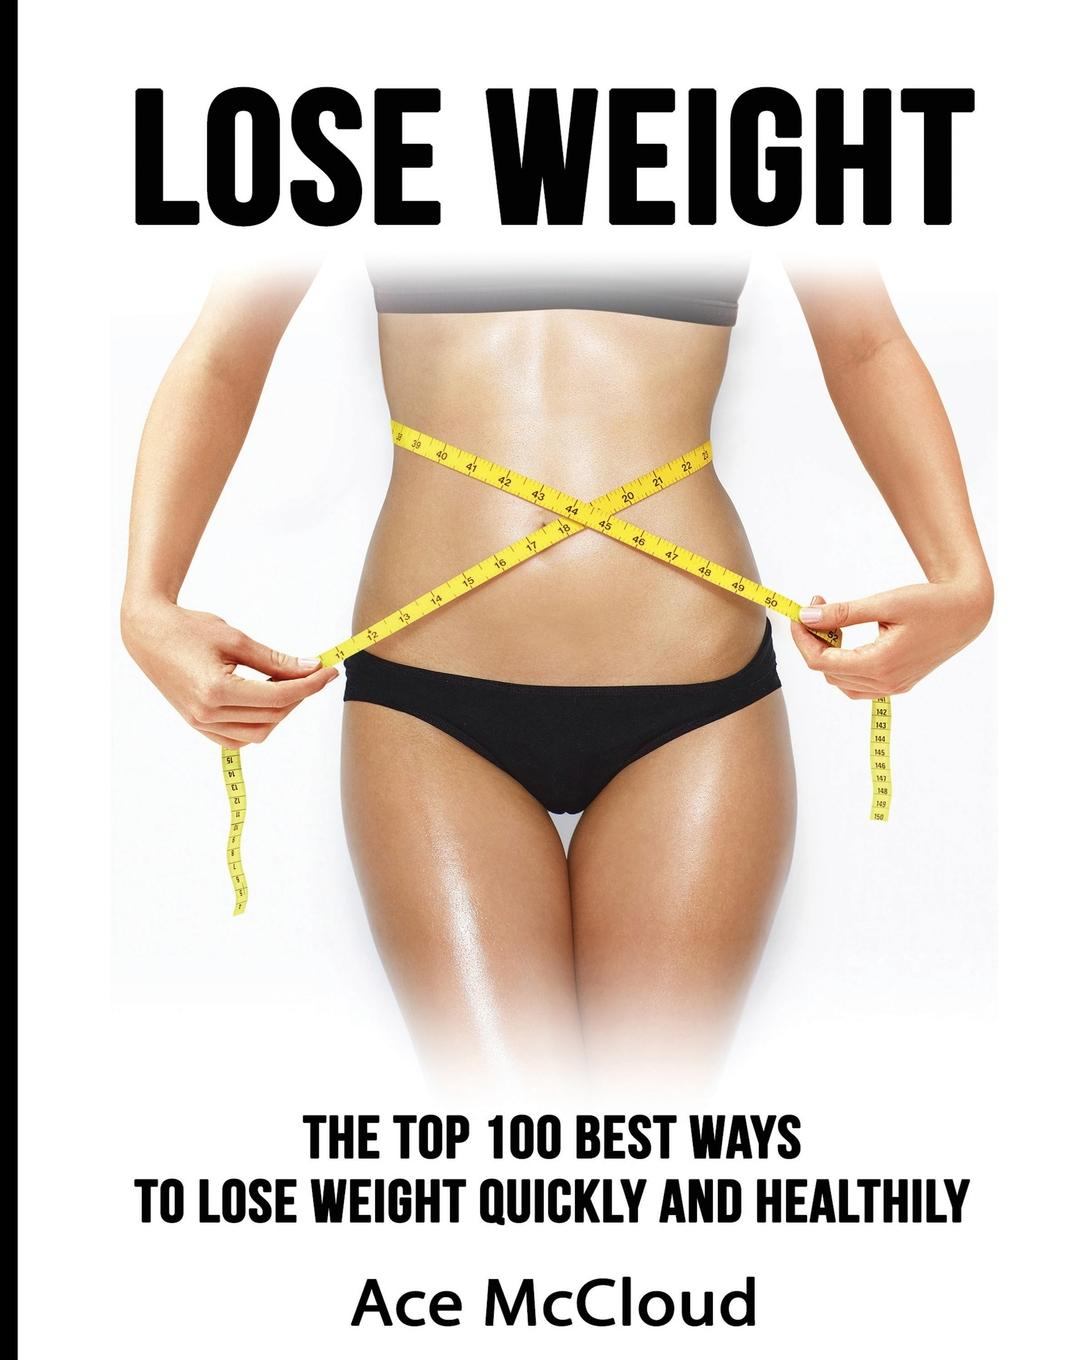 Ace McCloud Lose Weight. The Top 100 Best Ways To Weight Quickly and Healthily